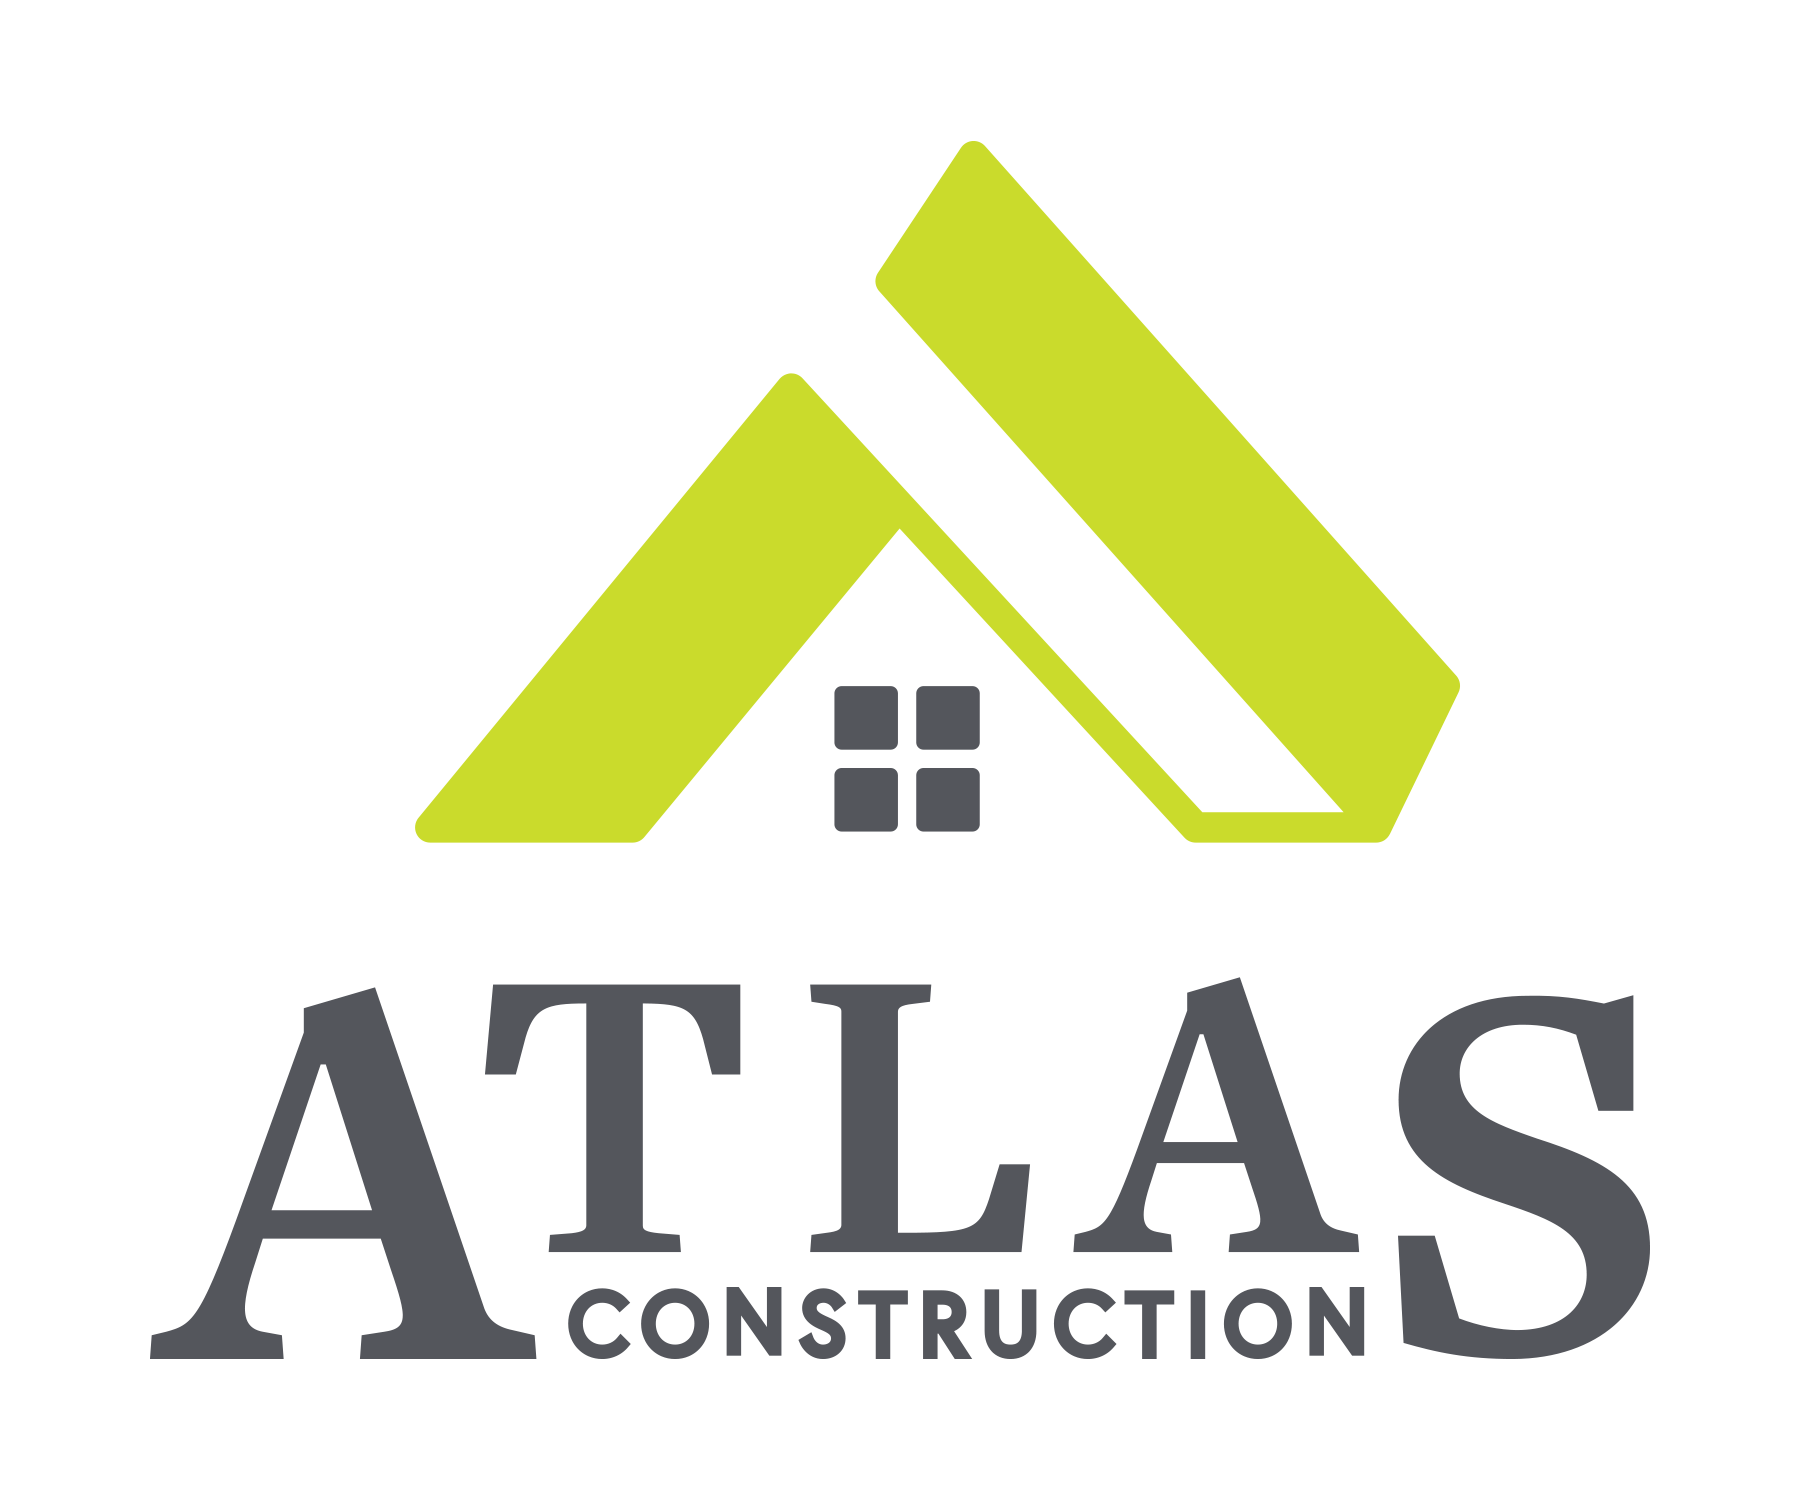 AtlasConstruction_Logo-4C.png